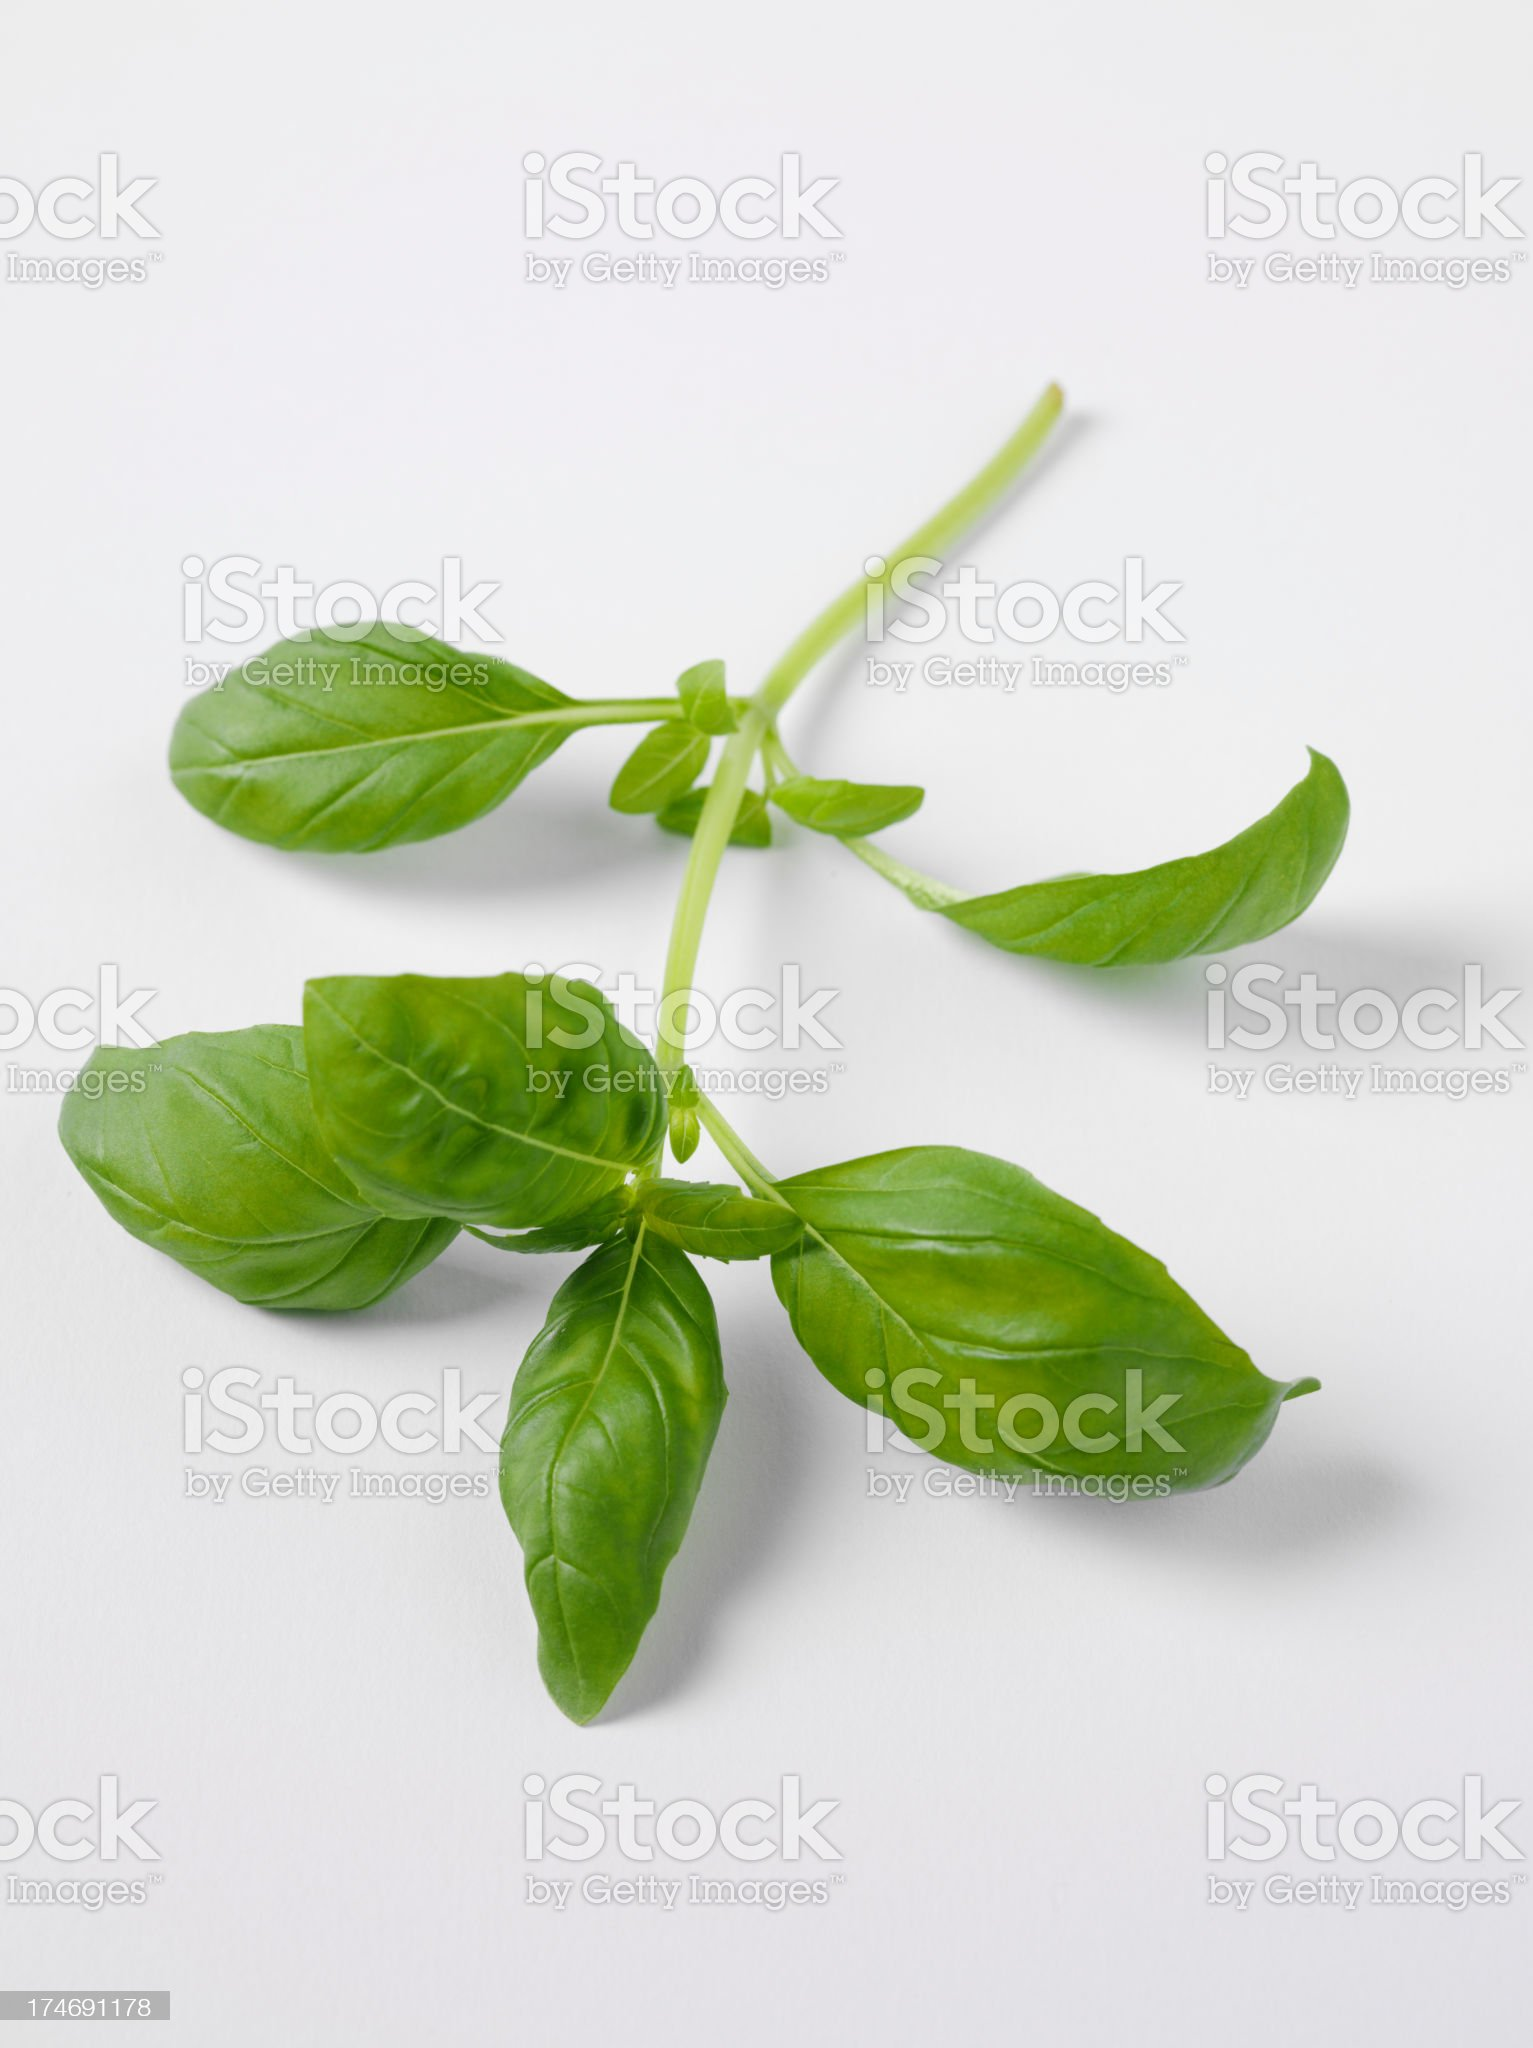 Sprig of Basil Leaves royalty-free stock photo